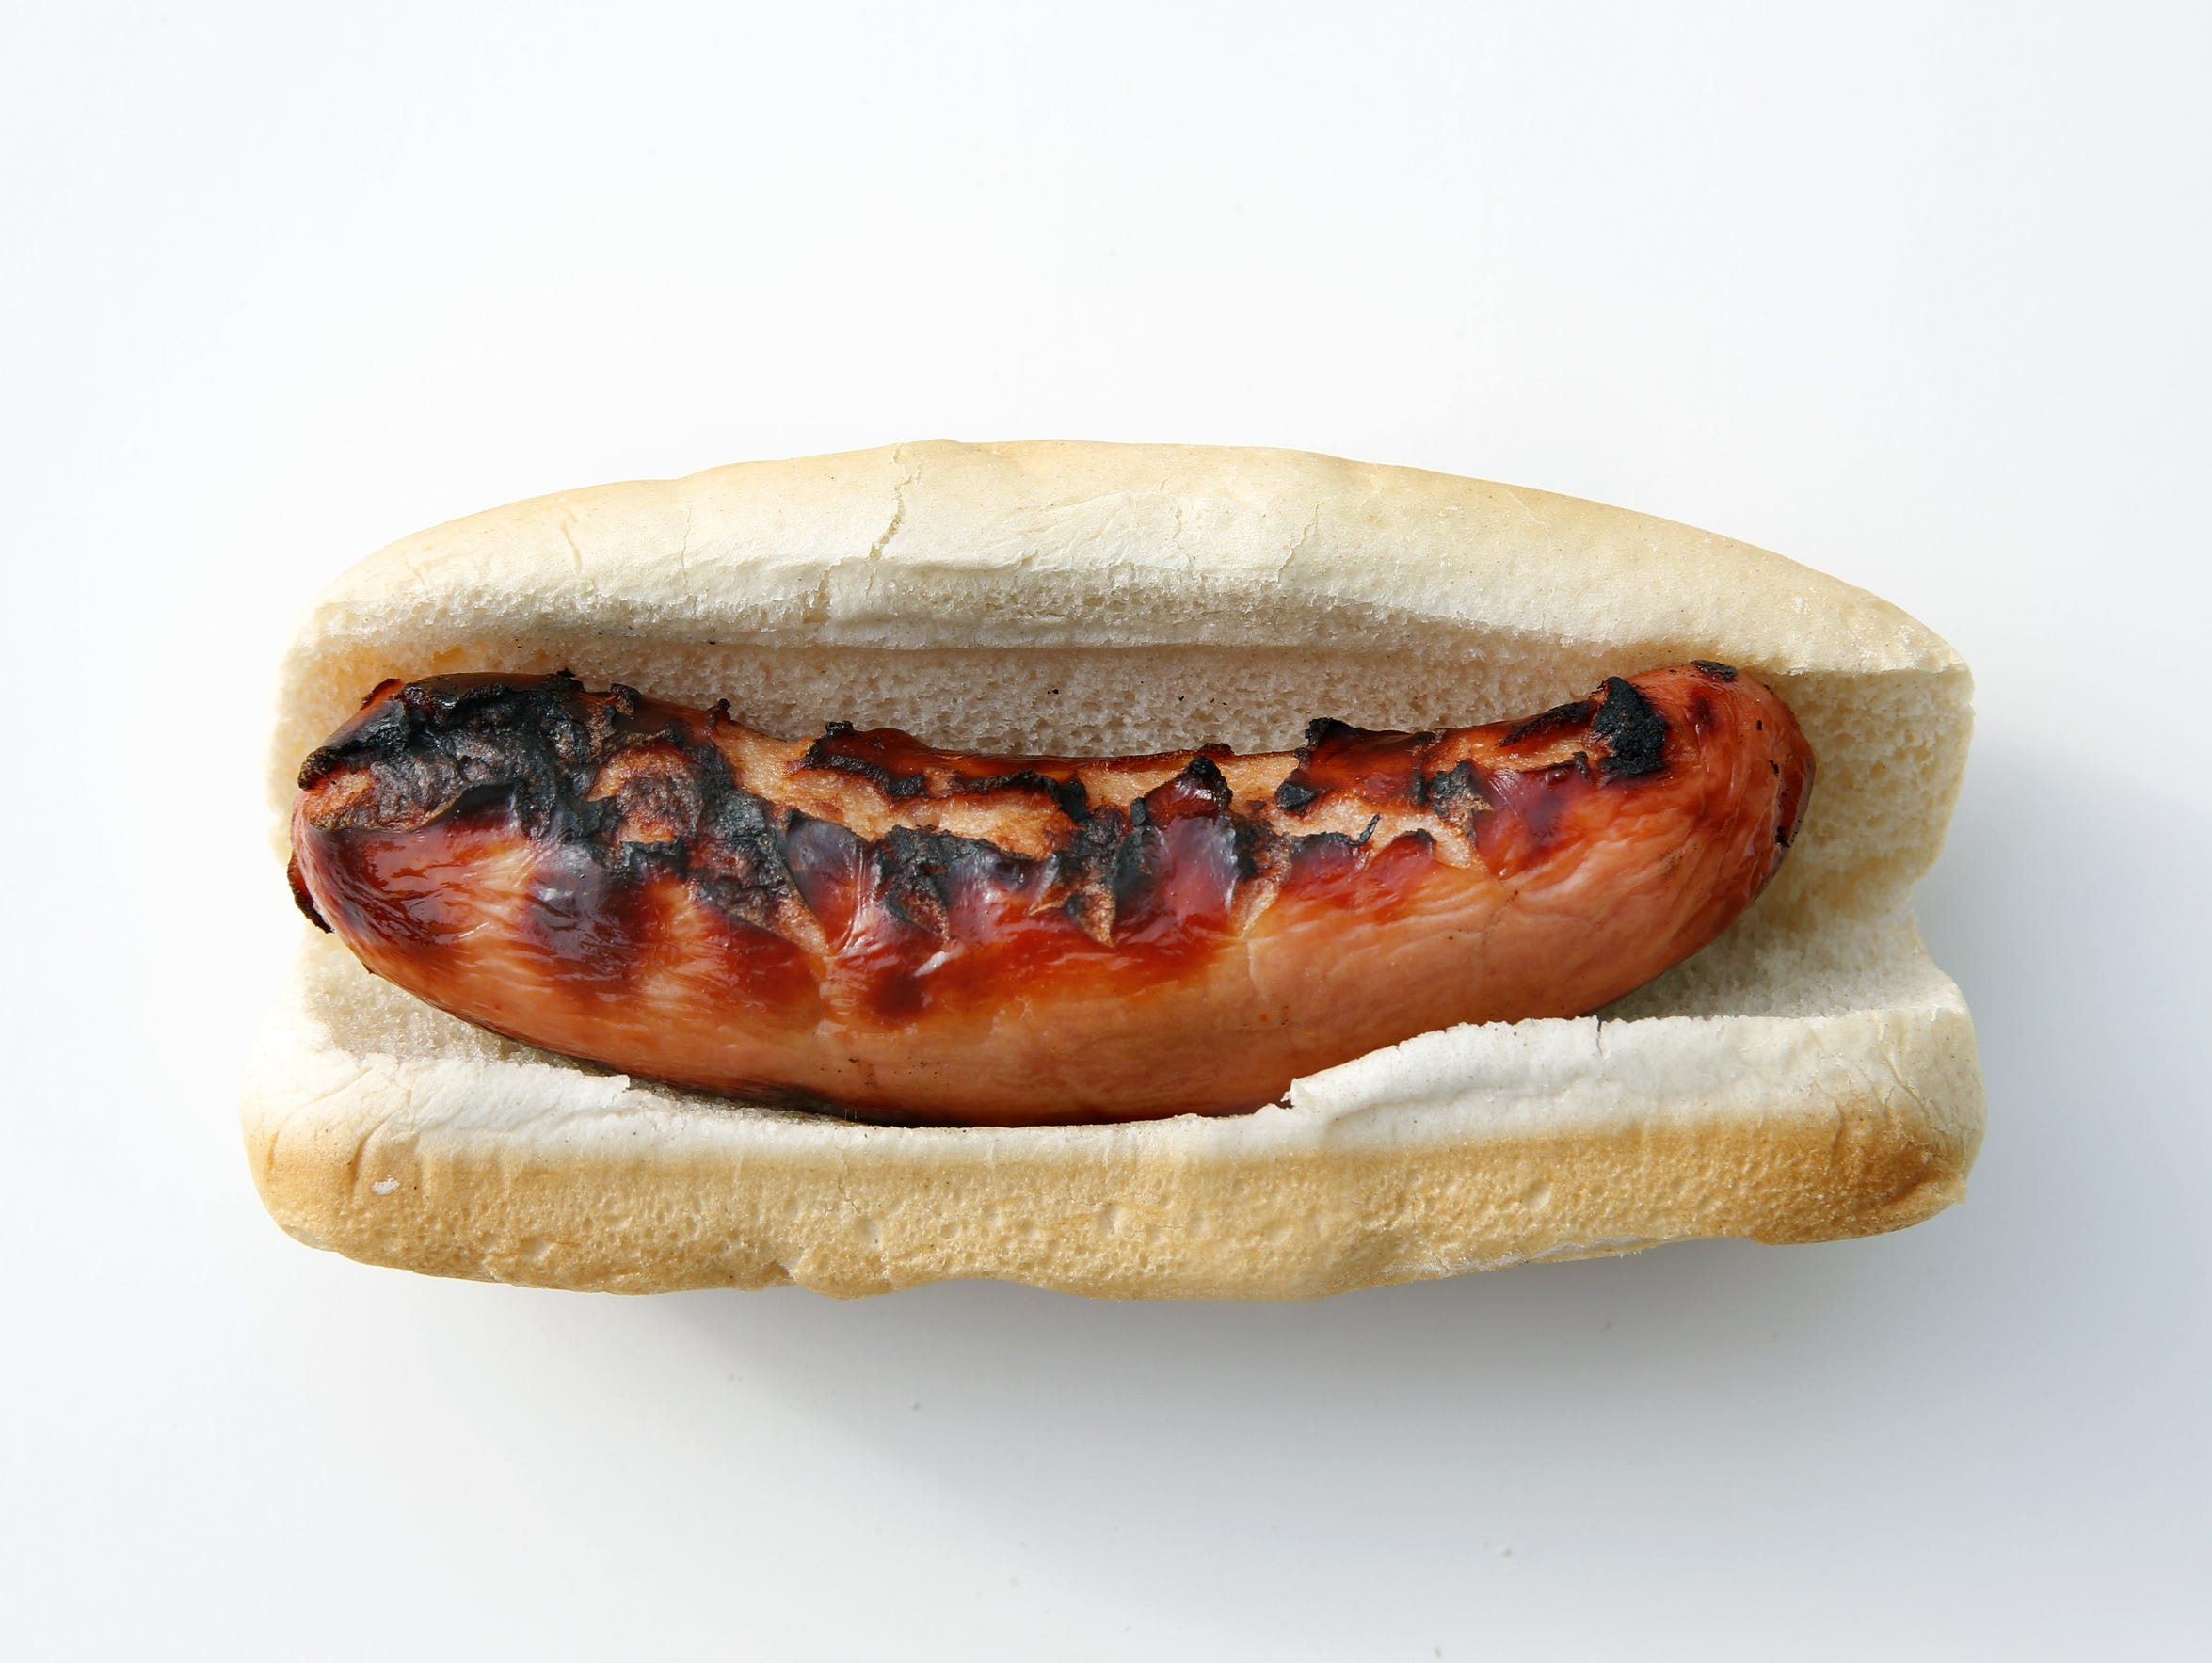 Zweigle'sPop-Open Hot Dogs topped our taste test for